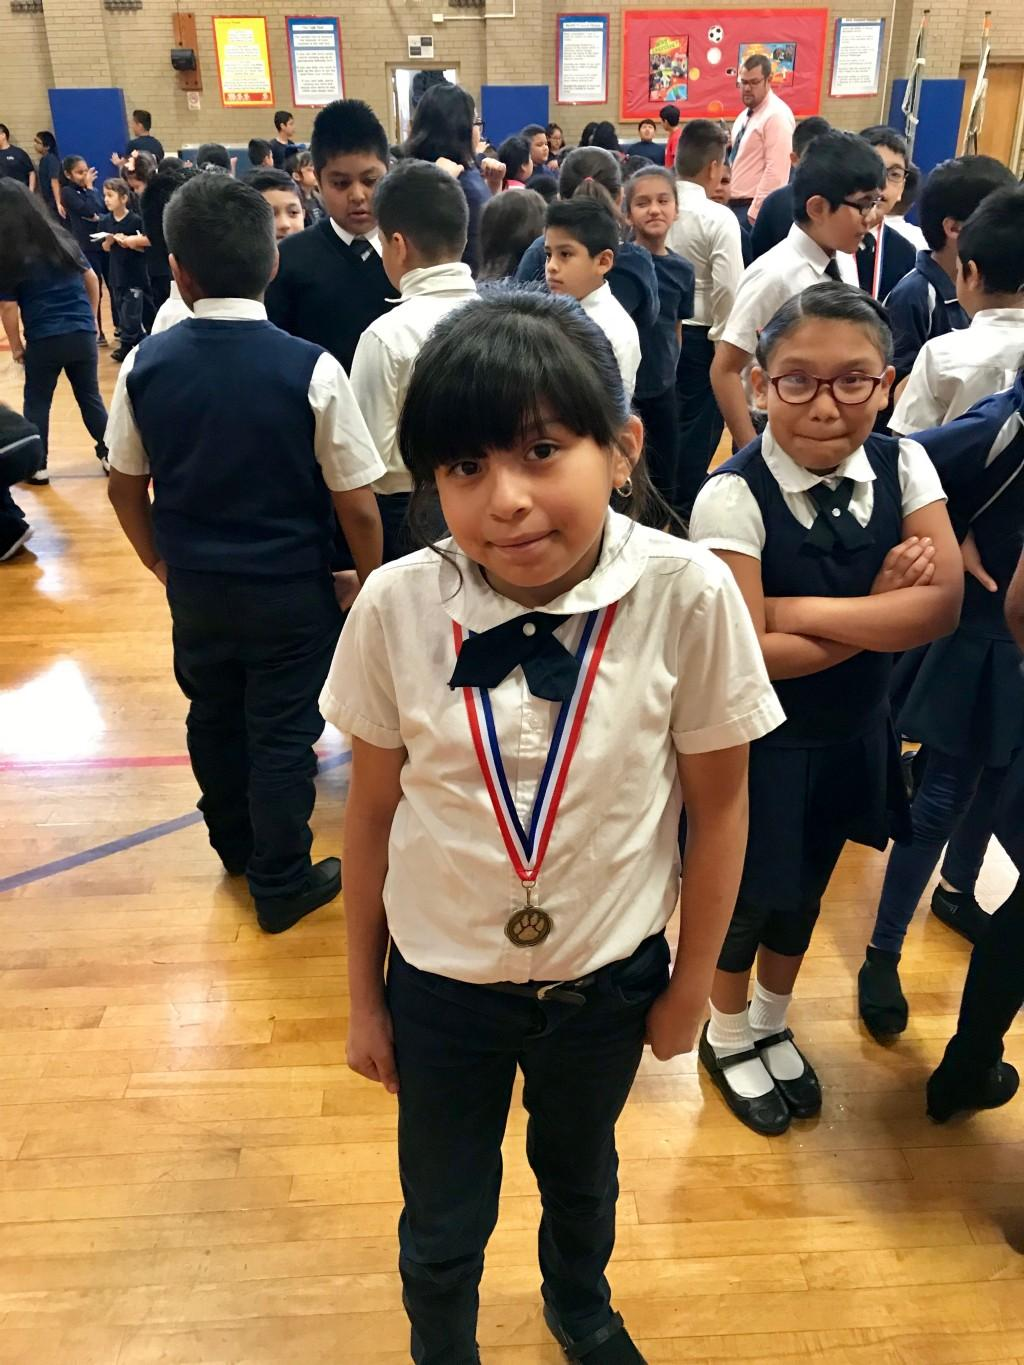 Student wins medal